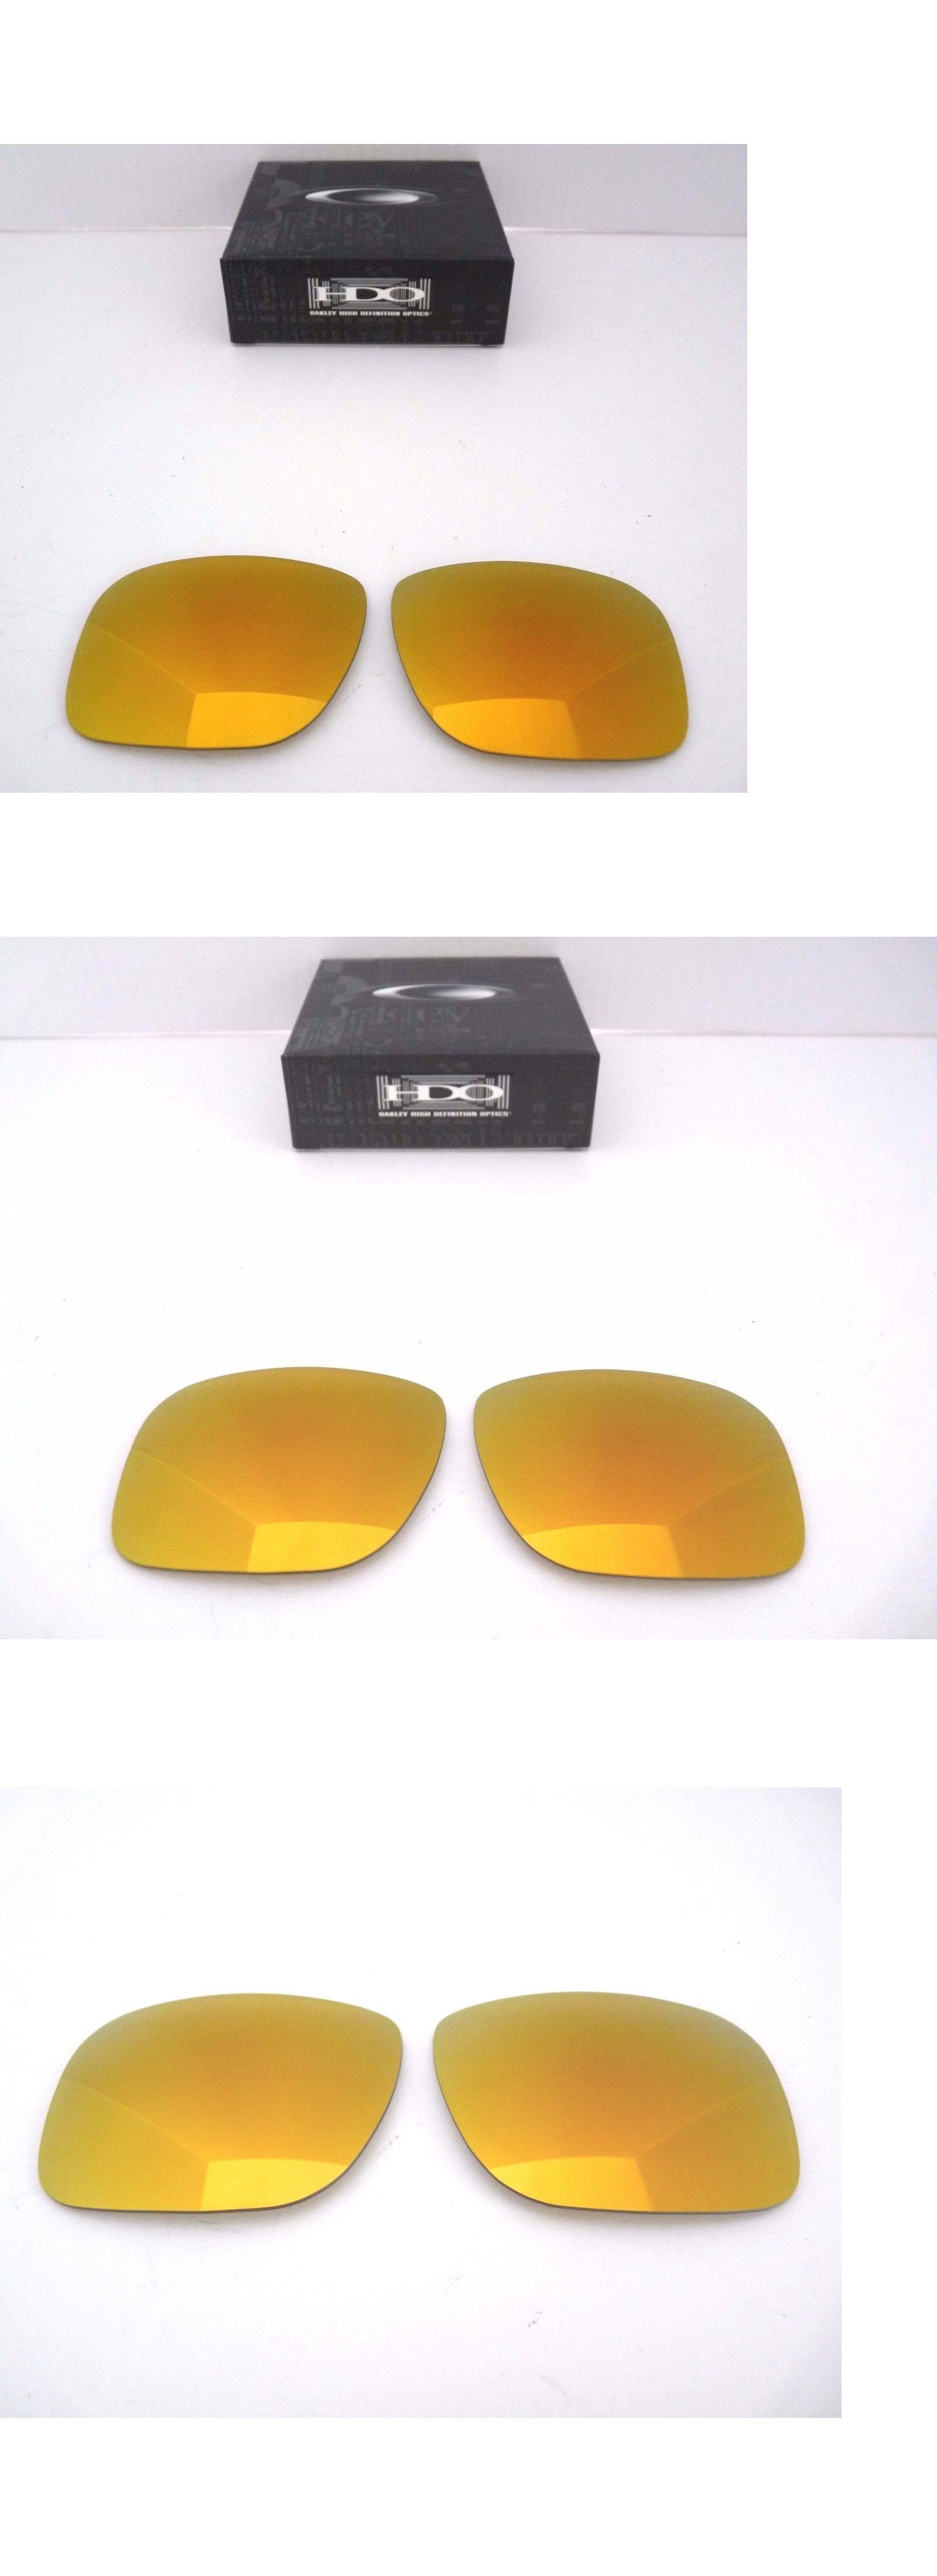 8ea345db2a Sunglass Lens Replacements 179194  New Oakley Holbrook Replacement Lens 24K  Gold Iridium 43-350